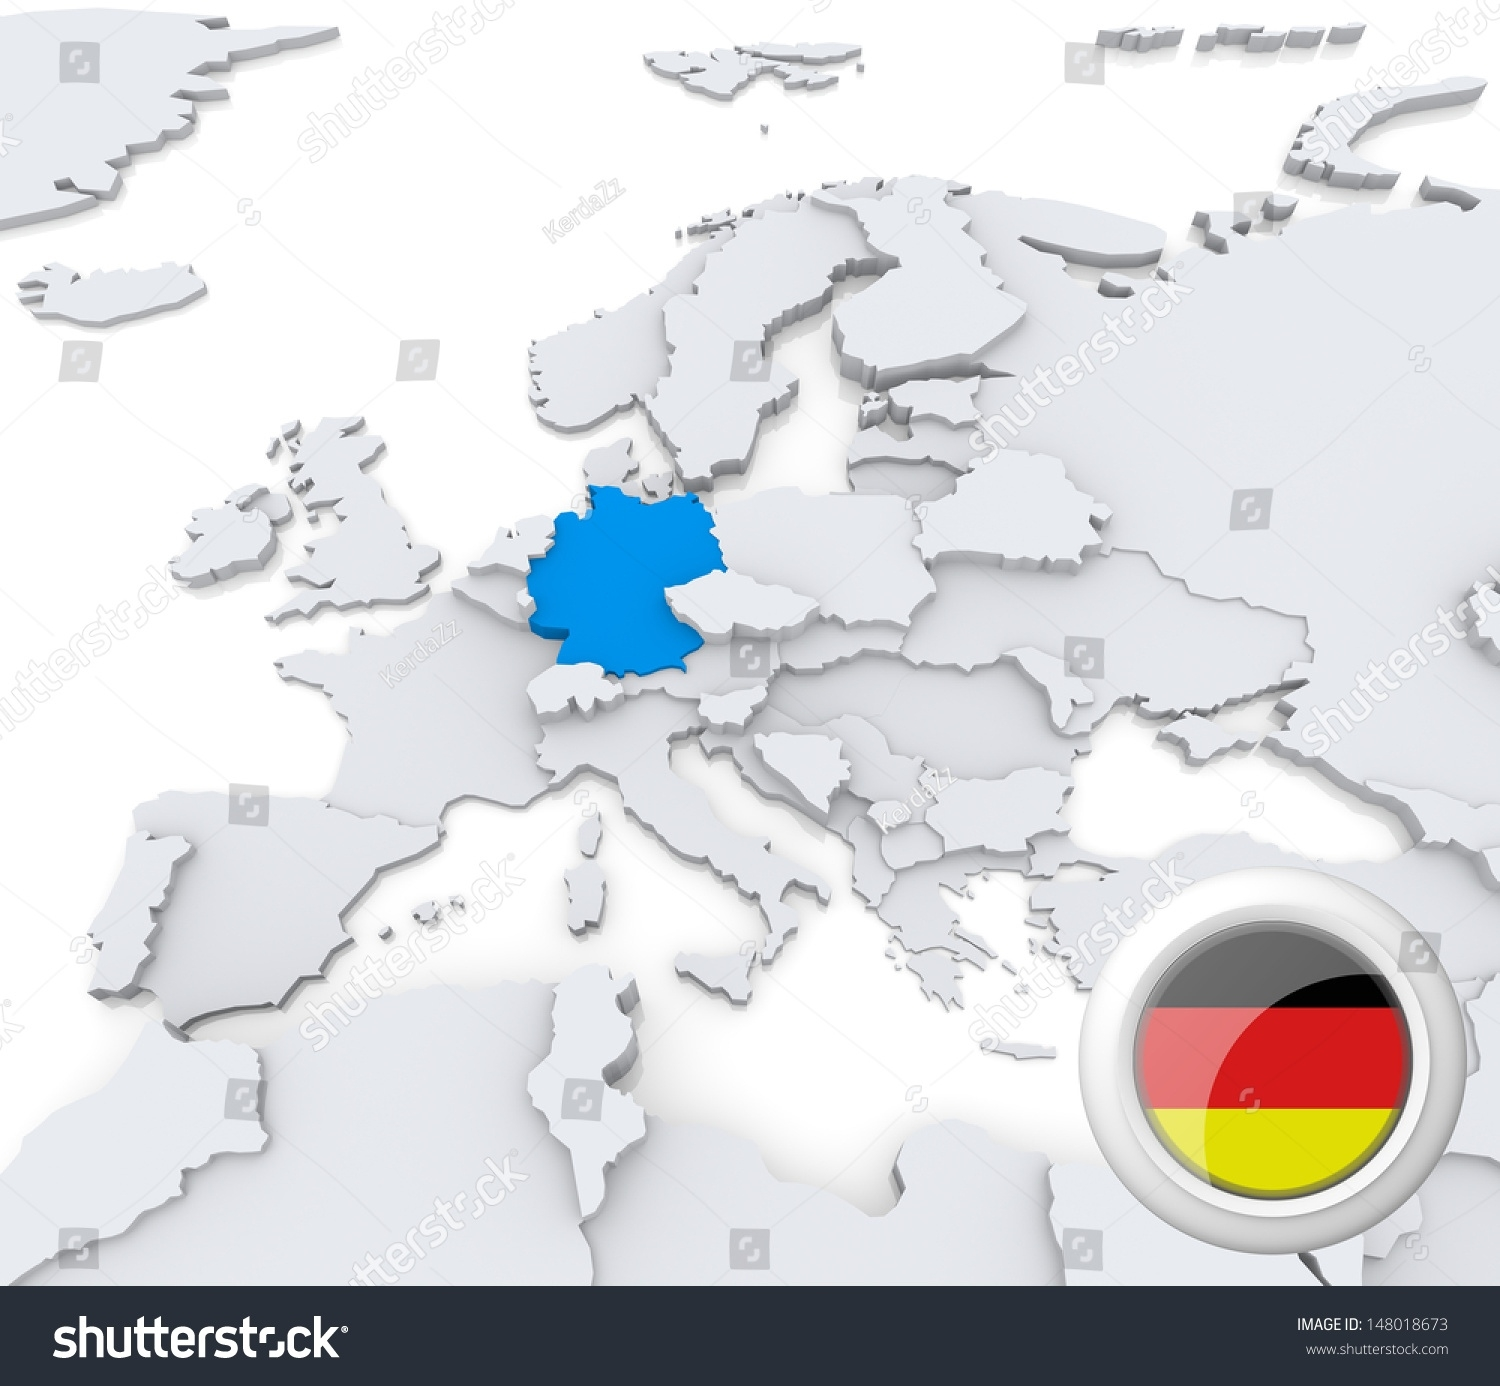 Highlighted Germany On Map Europe National Stock Illustration 148018673 pertaining to Europe Map With Germany Highlighted